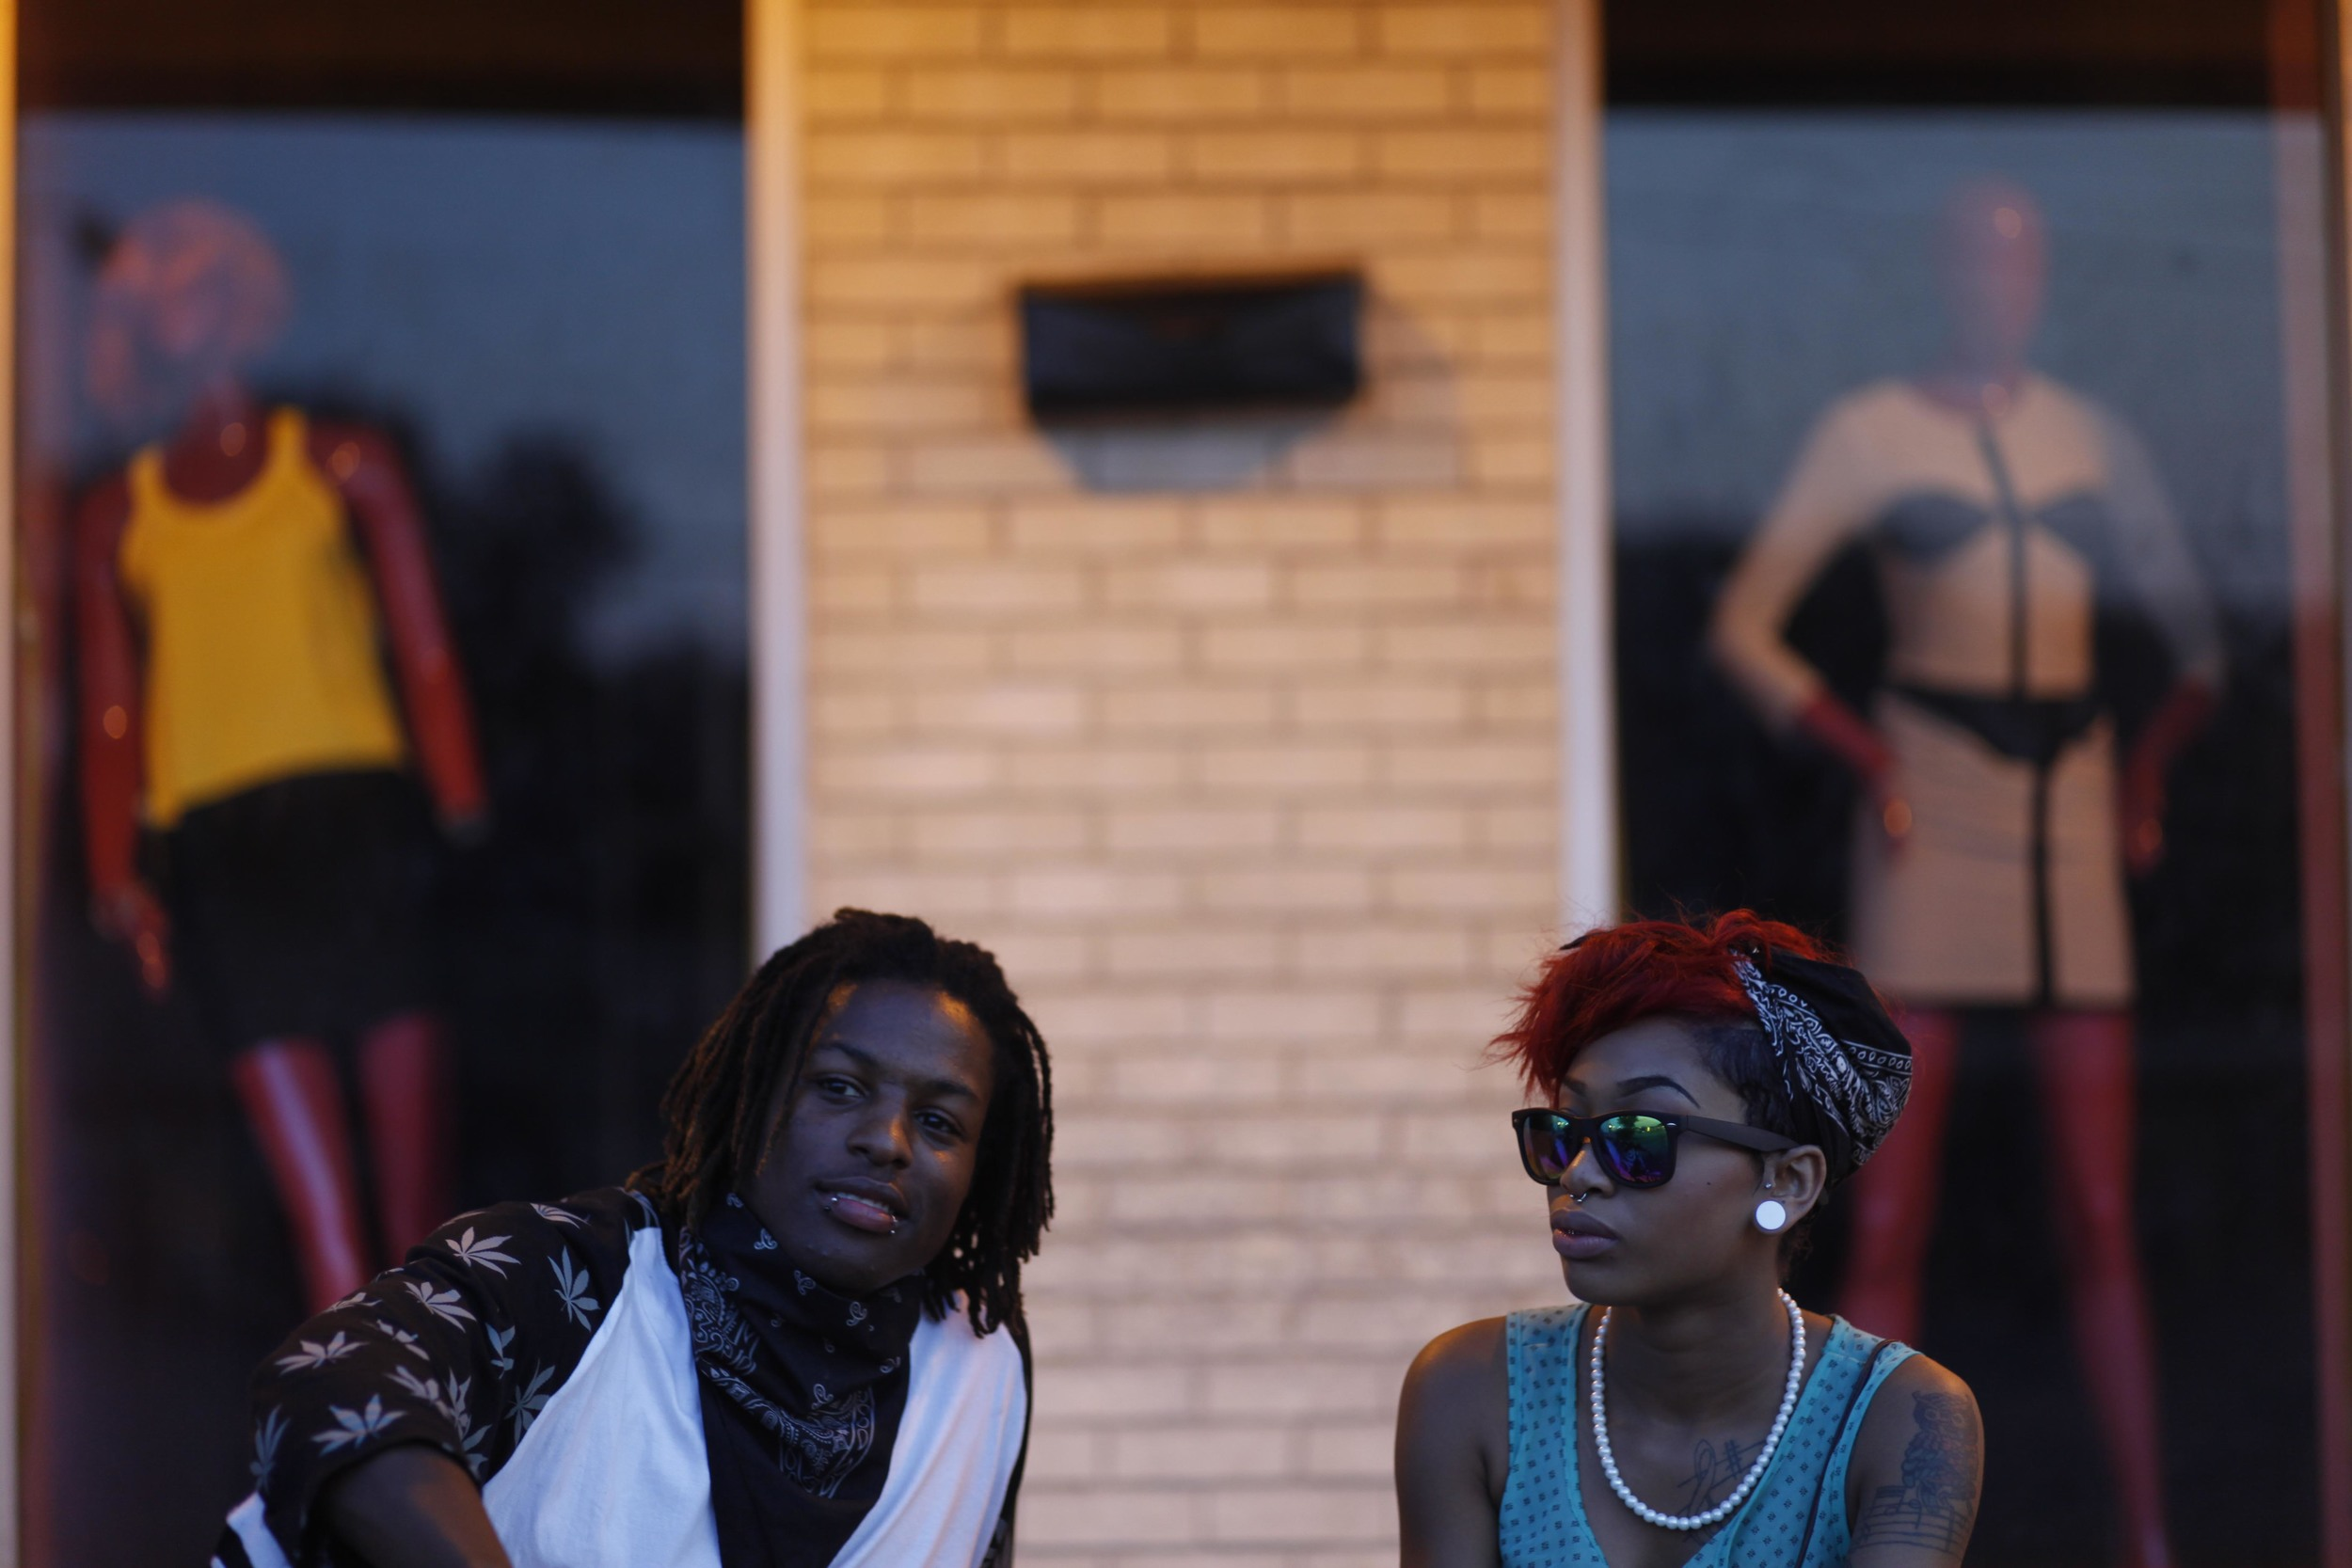 Asia Jackson, left, and Taylor Barnes, sit in front of a W. Florissant Ave. boutique August 20, 2014 in Ferguson, MO. Both are from Ferguson and were out to support the protest.